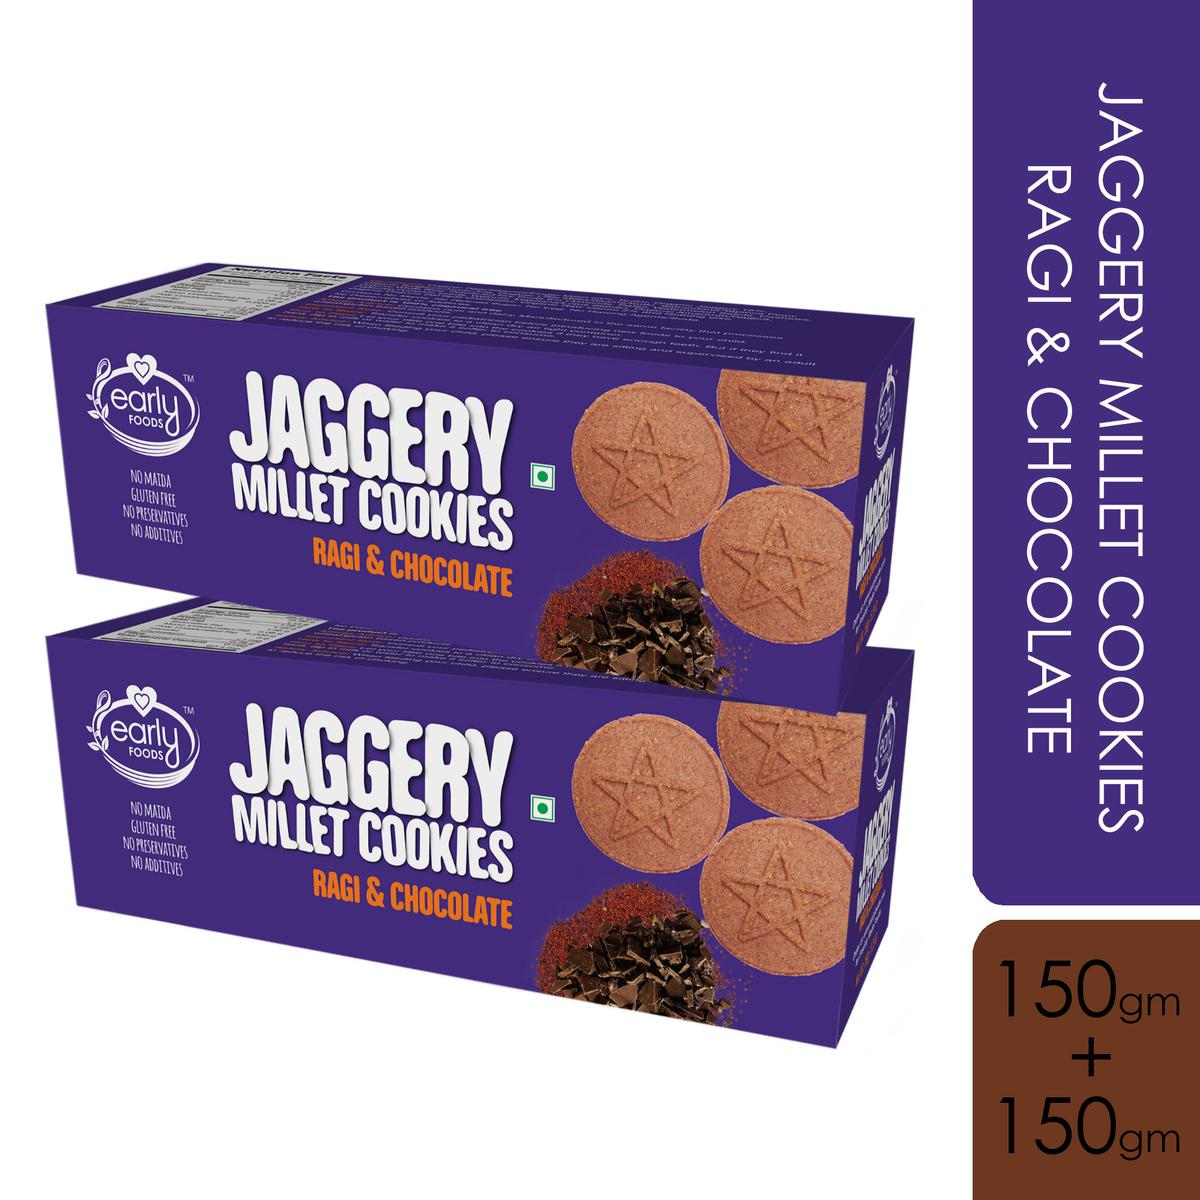 Early Foods - Pack of 2 - Organic Ragi and Choco Jaggery Cookies 150g X 2